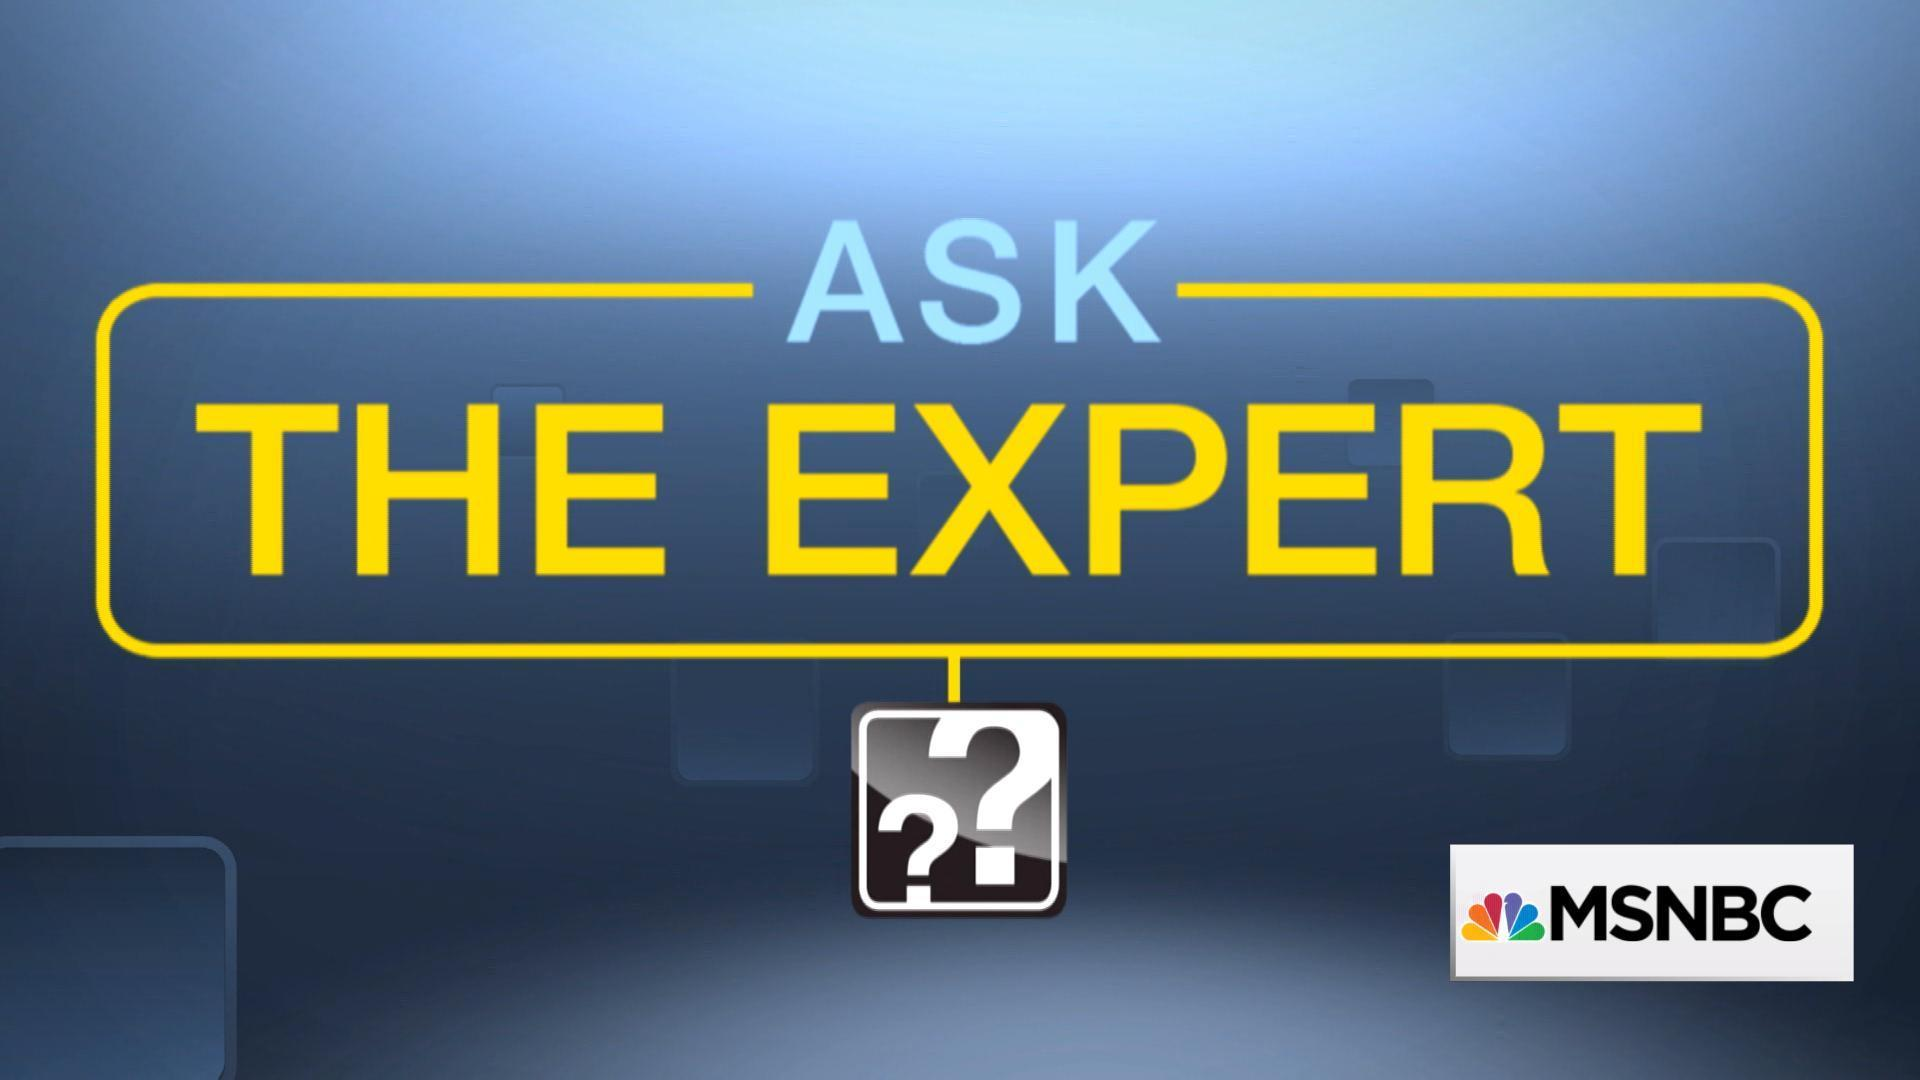 Ask the expert: Retaining staff